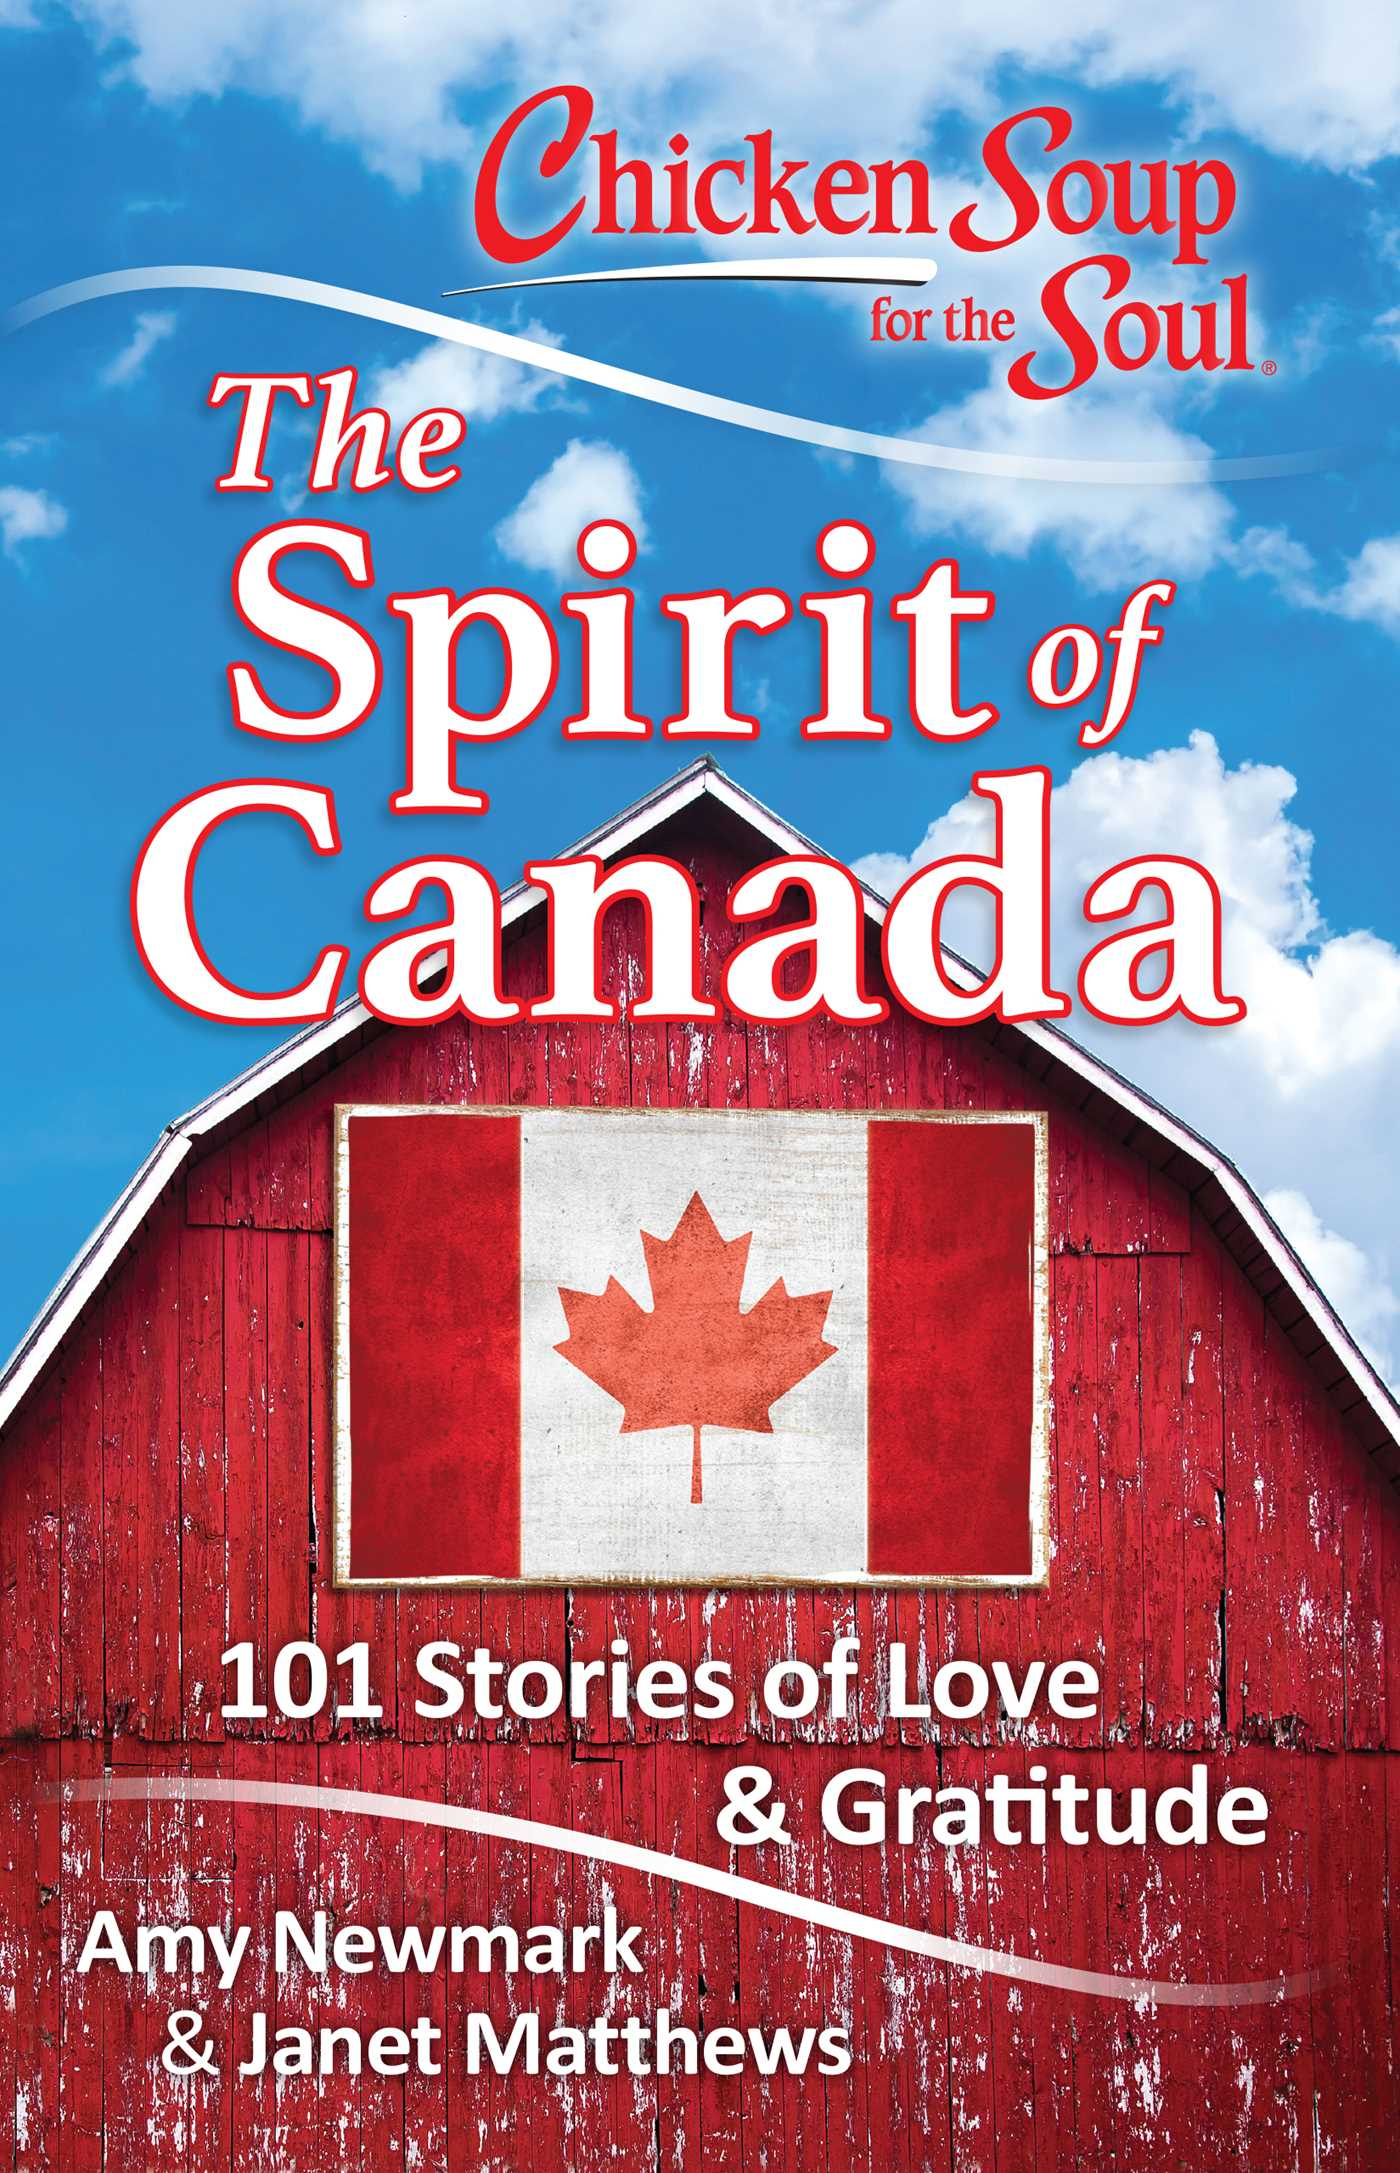 Chicken soup for the soul the spirit of canada 9781611599688 hr